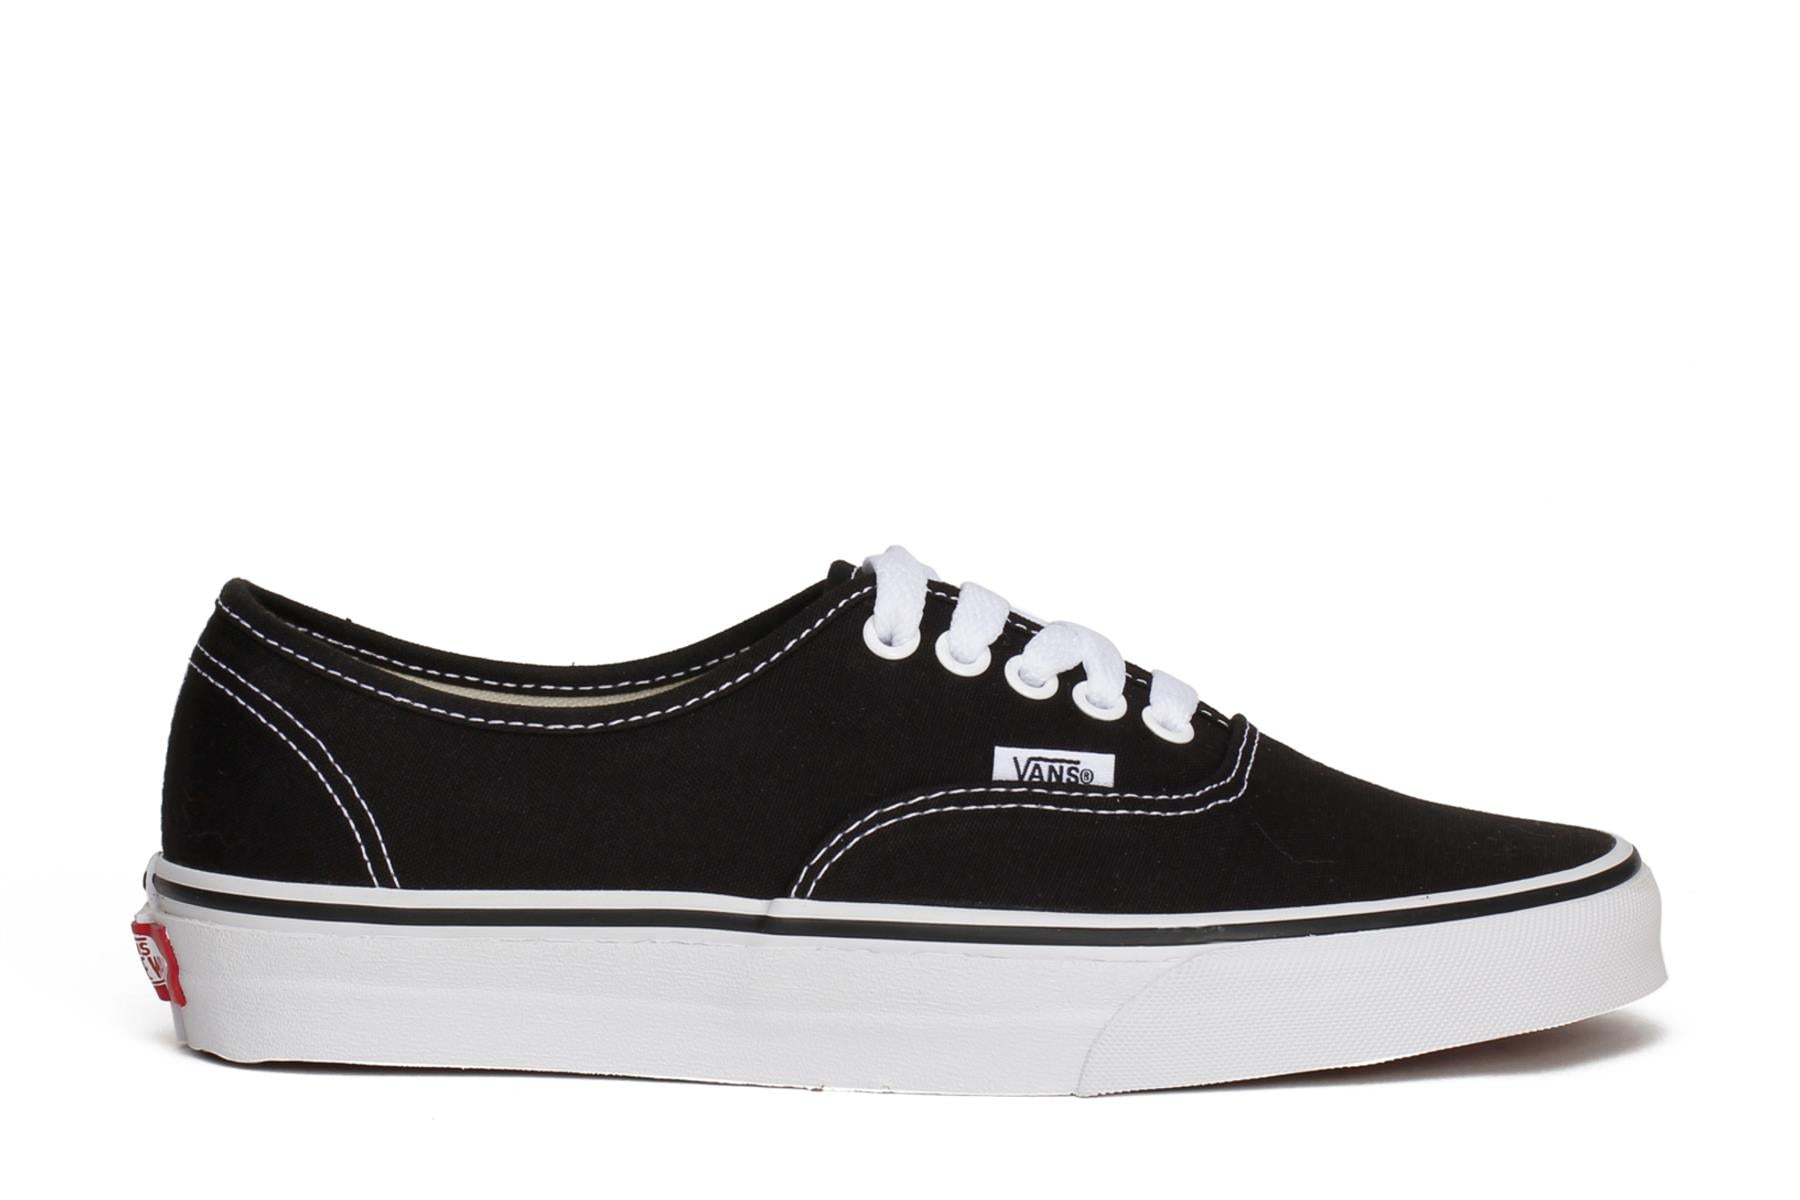 Authentic Vans Sneakers